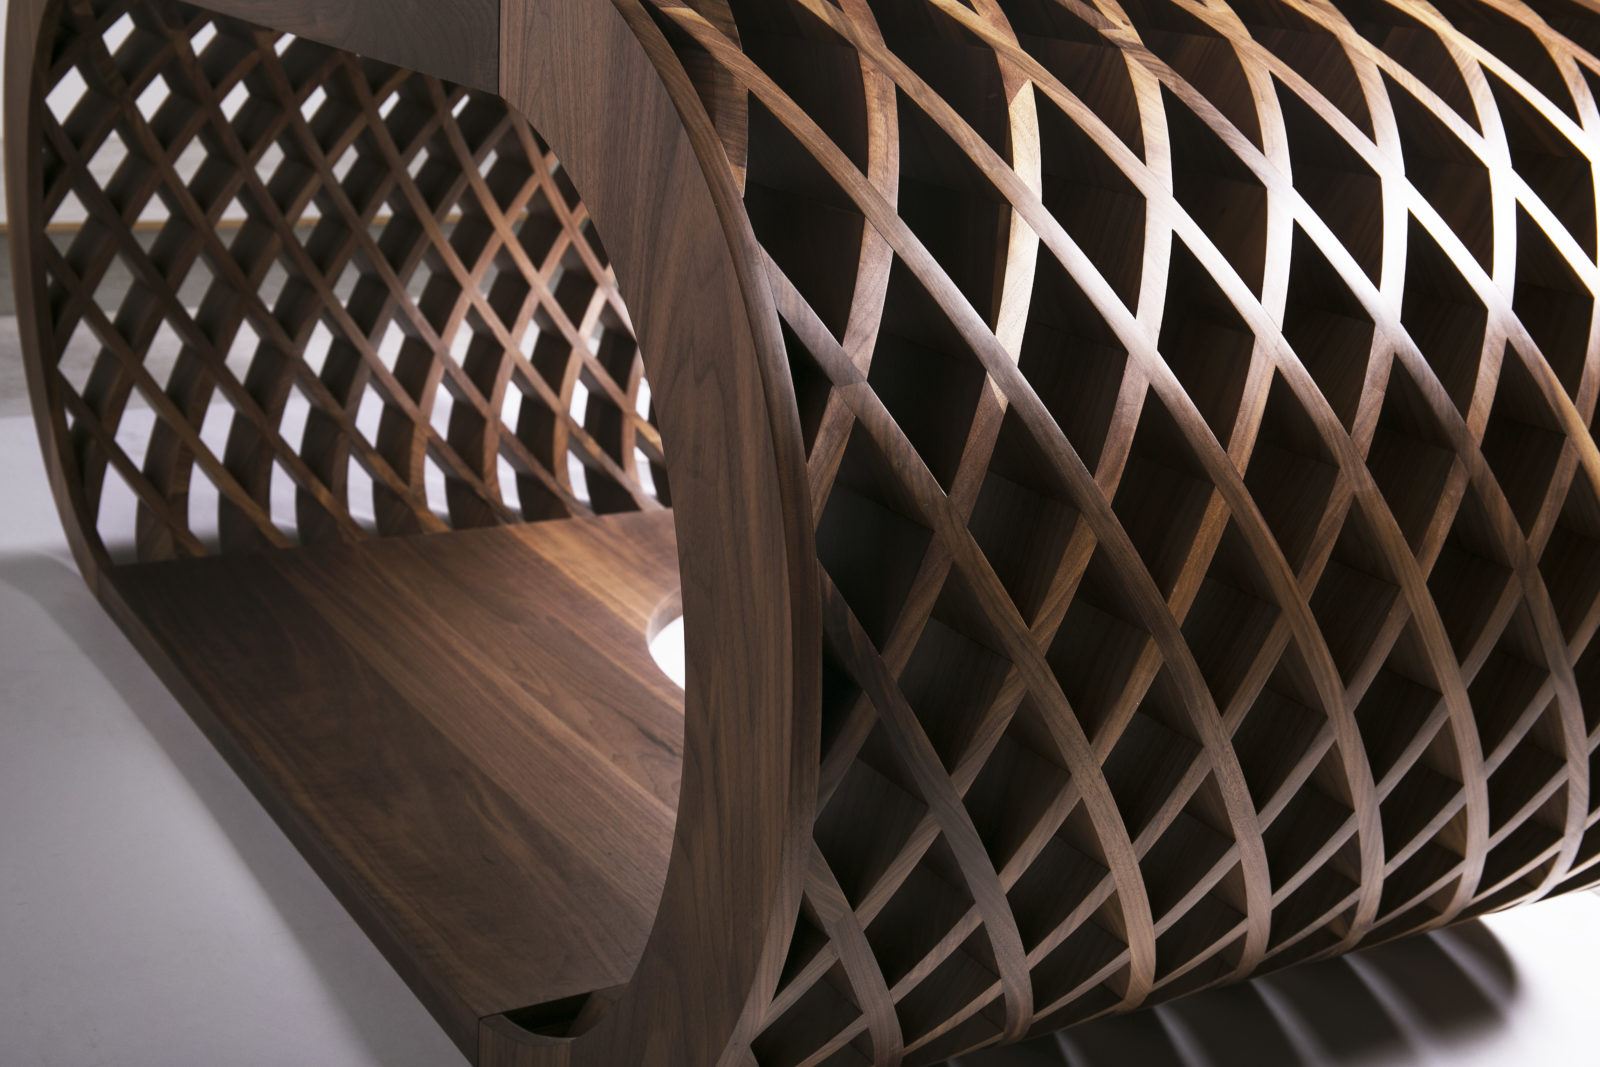 Curved oiled solid walnut criss-cross pattern